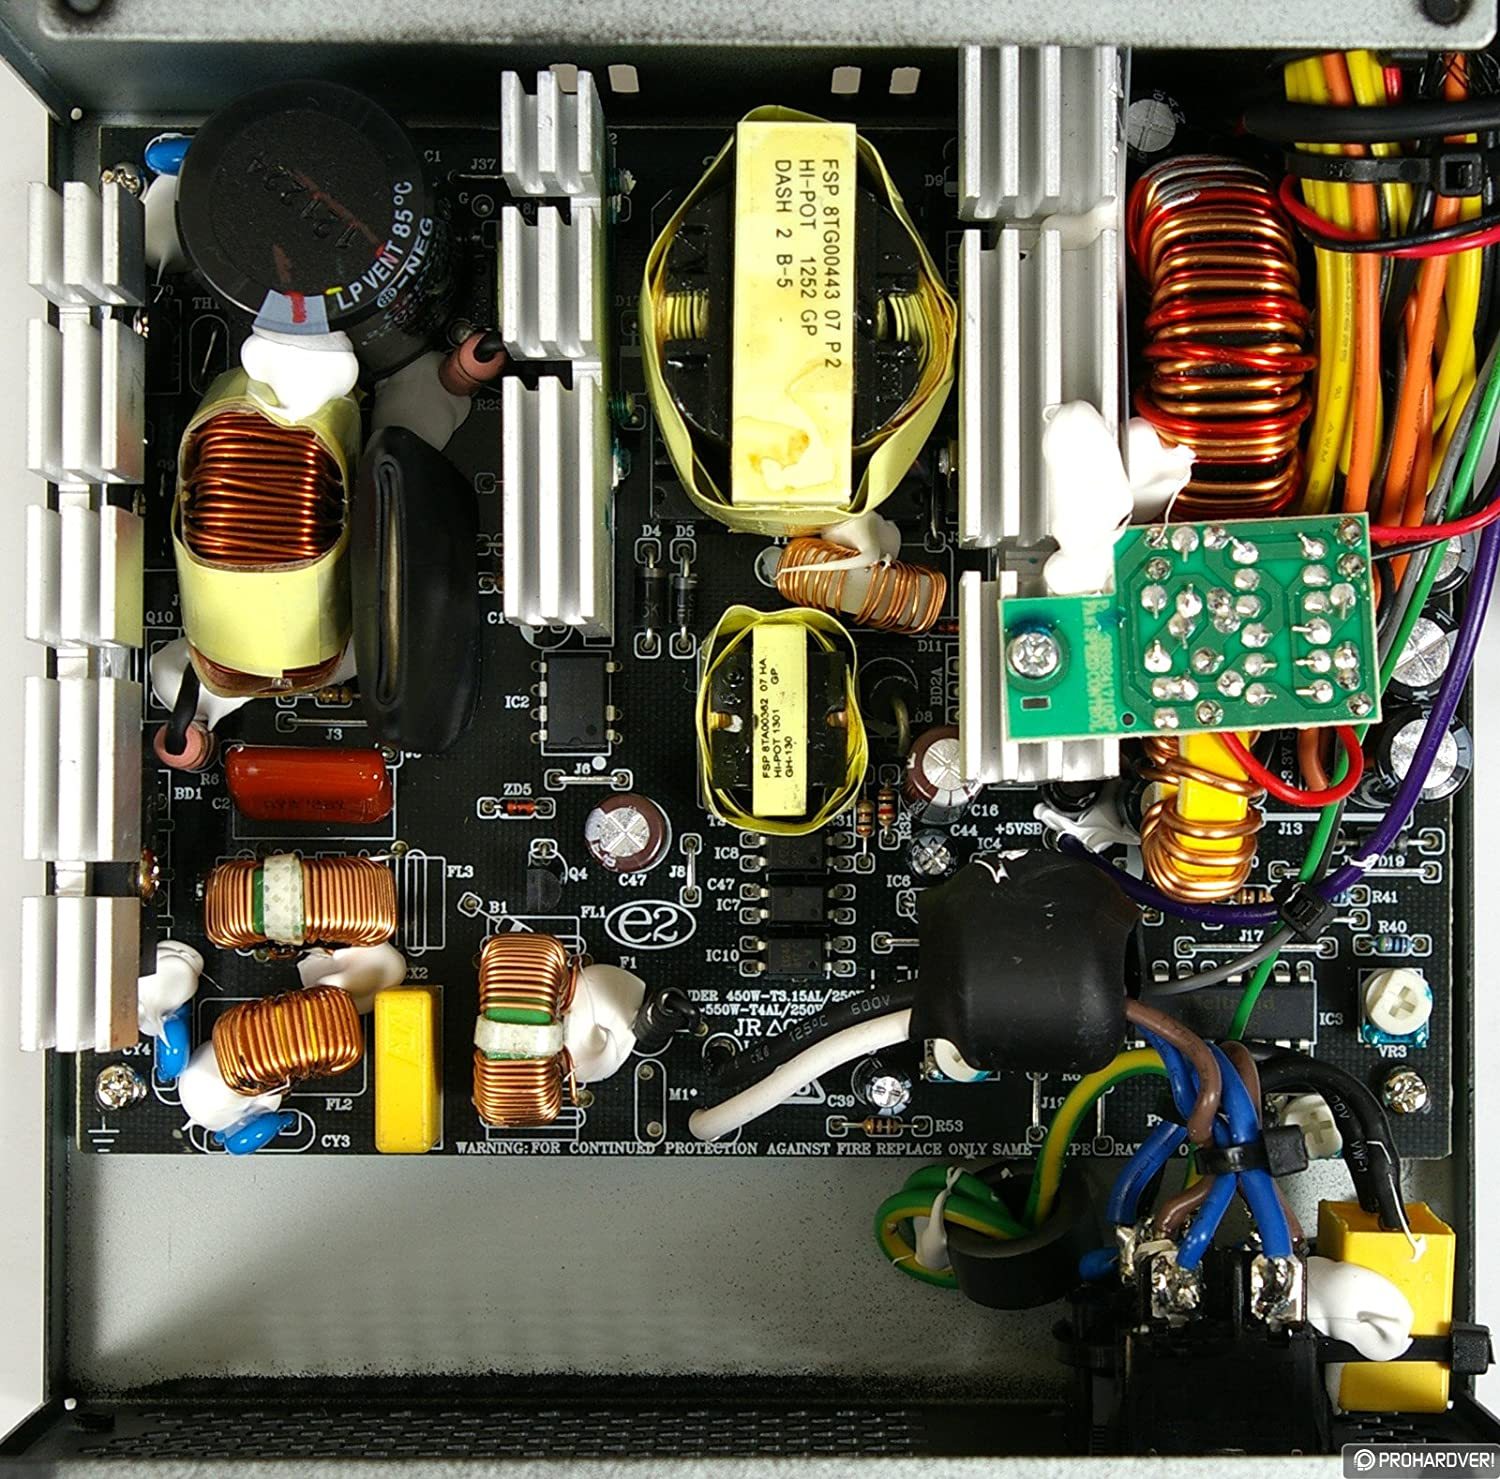 Buy Antec Vp450p 450w Power Supply Online At Low Prices 450 W Smps Circuit Diagram In India Reviews Ratings